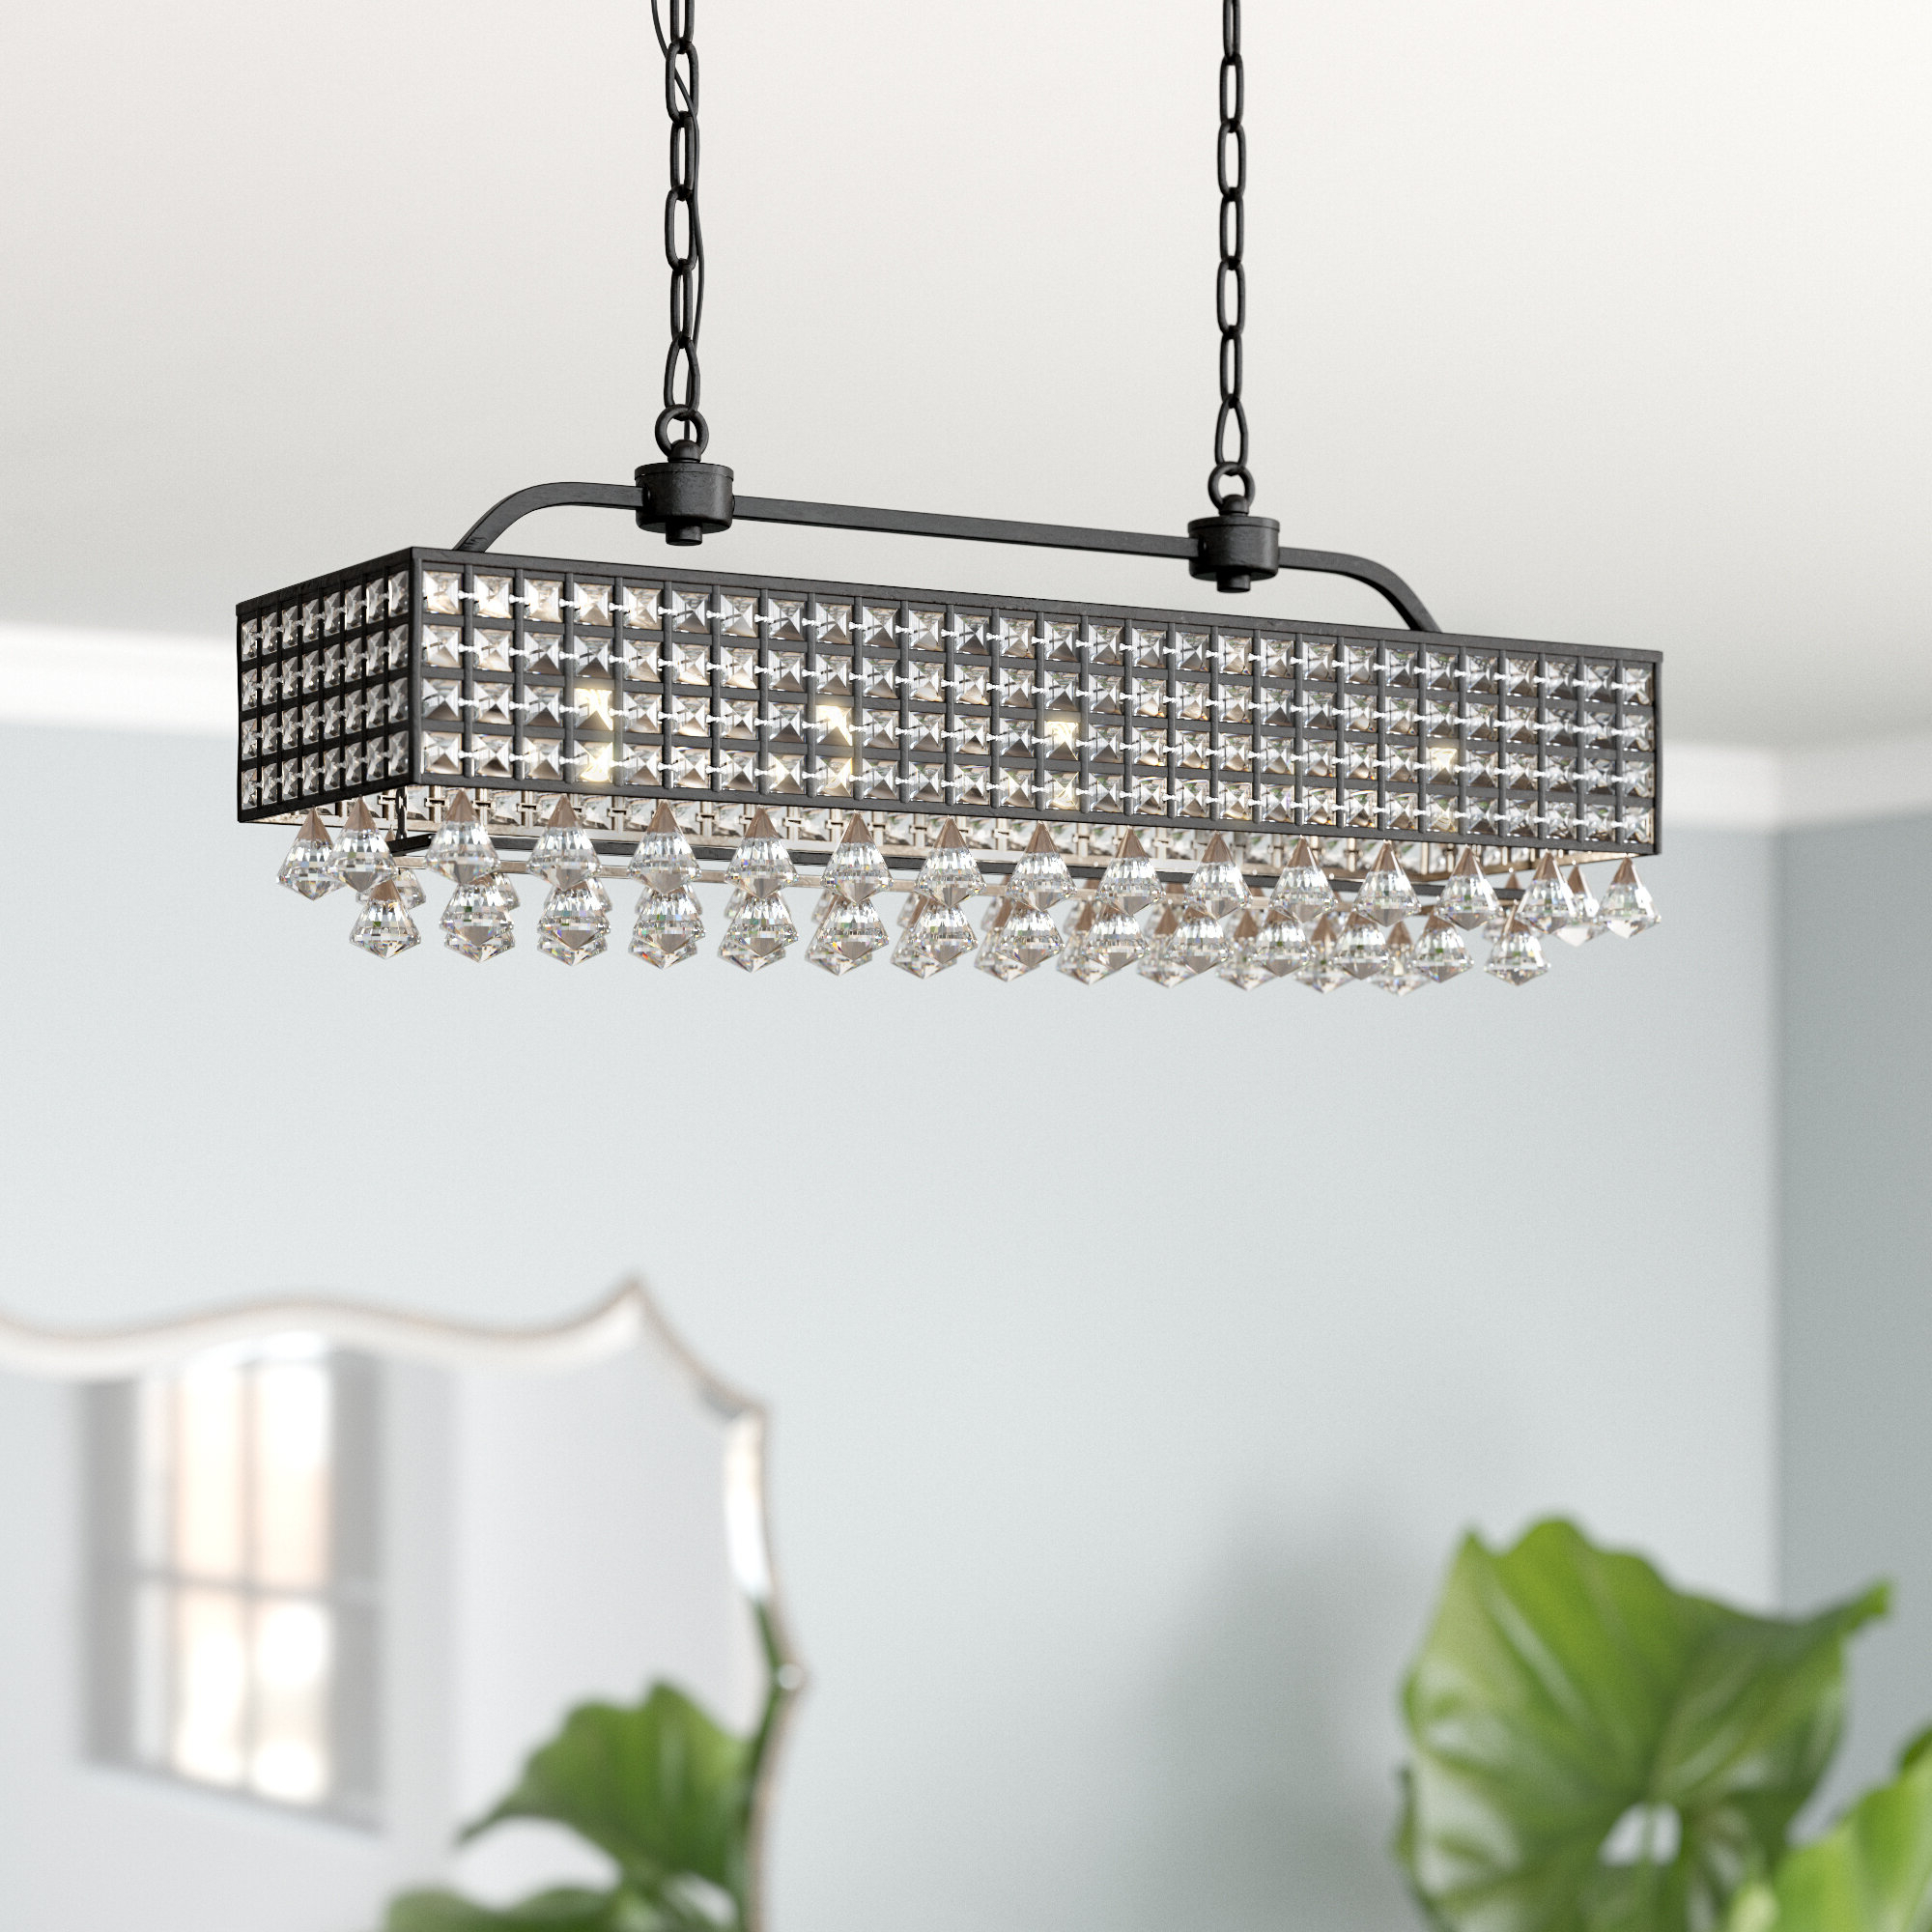 Verdell 5 Light Crystal Chandeliers Within 2019 Madilynn 5 Light Crystal Chandelier (View 16 of 20)